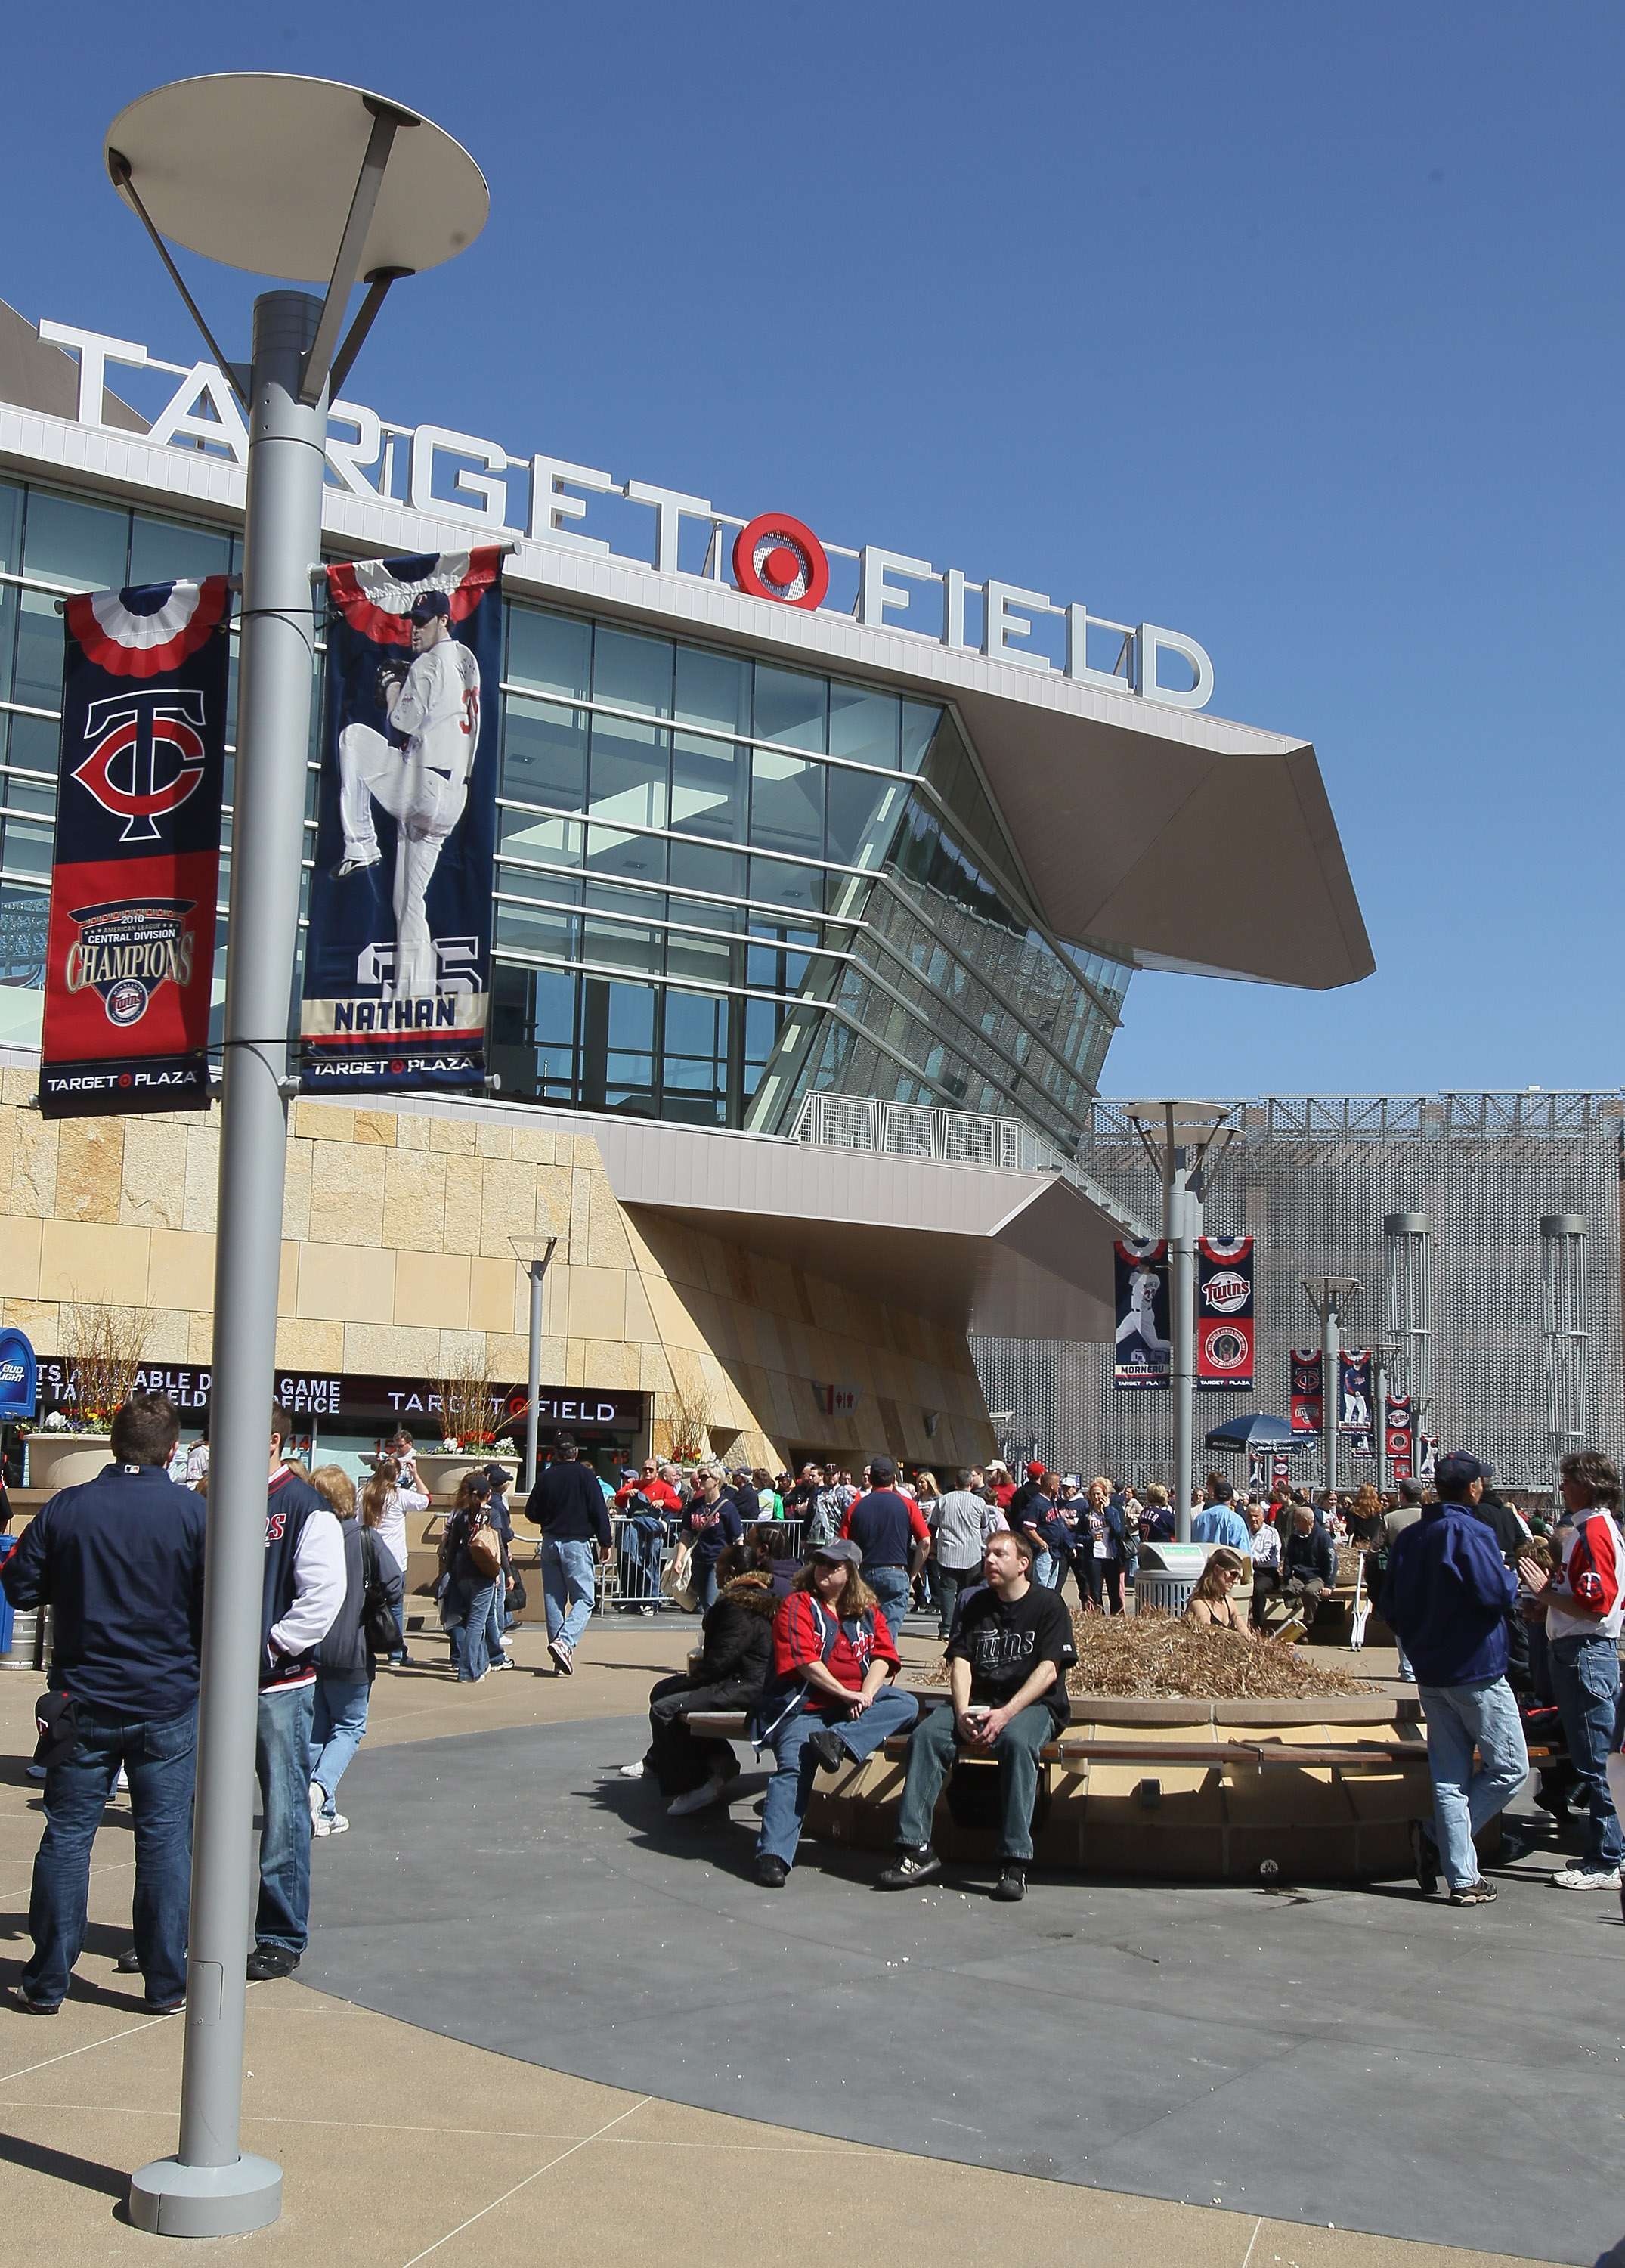 MINNEAPOLIS, MN - APRIL 08:  Fans enter the stadium before the game between the Oakland Athletics and the Minnesota Twins during Opening Day on April 8, 2011 at Target Field in Minneapolis, Minnesota.  (Photo by Elsa/Getty Images)